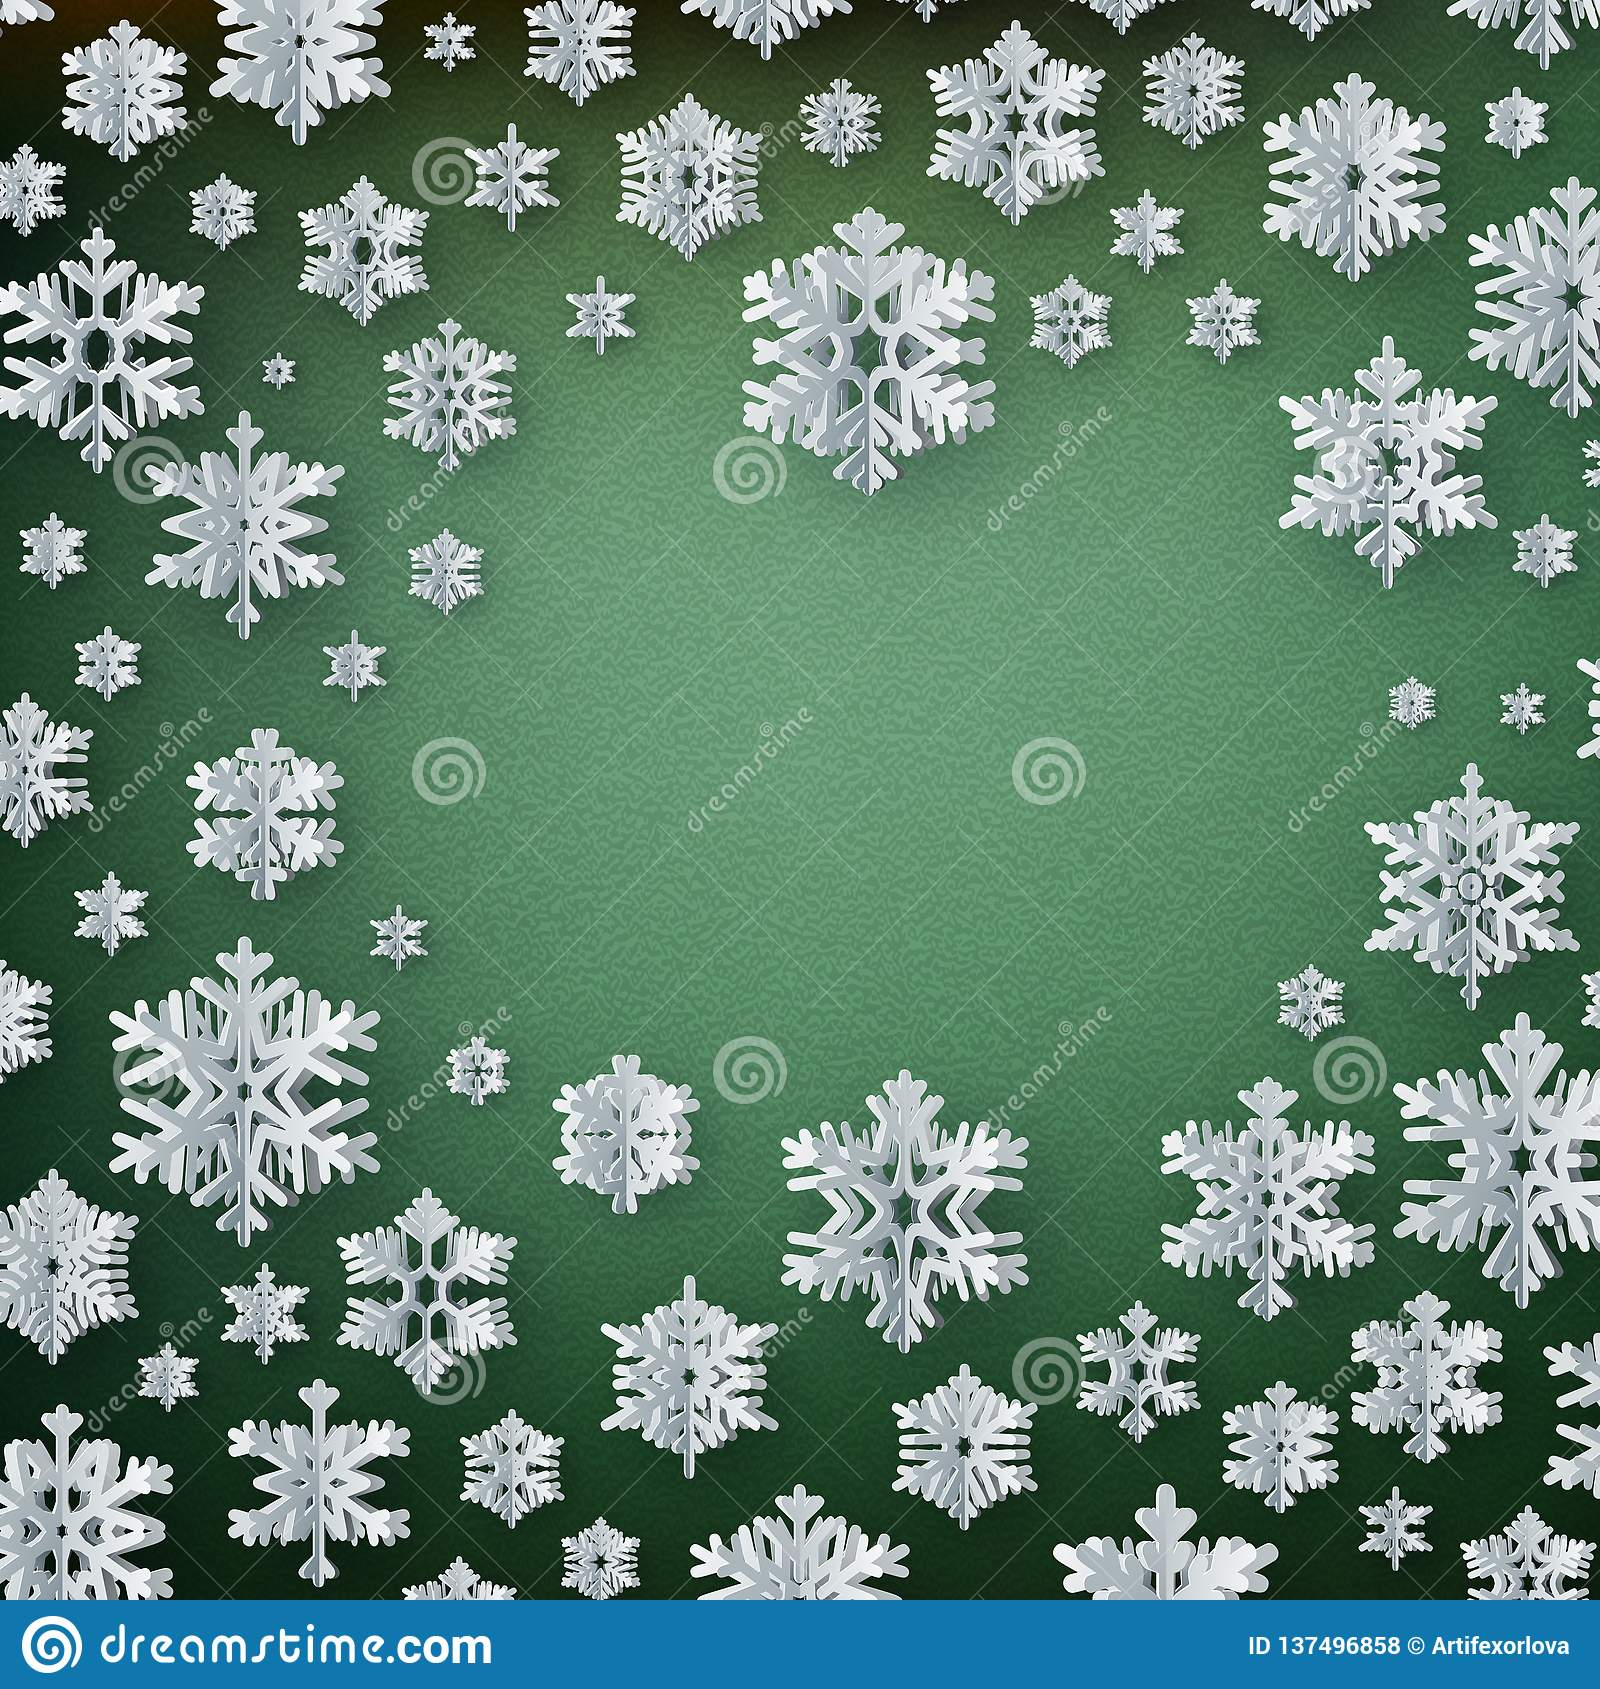 Abstract winter background with paper snowflakes on green background. EPS 10